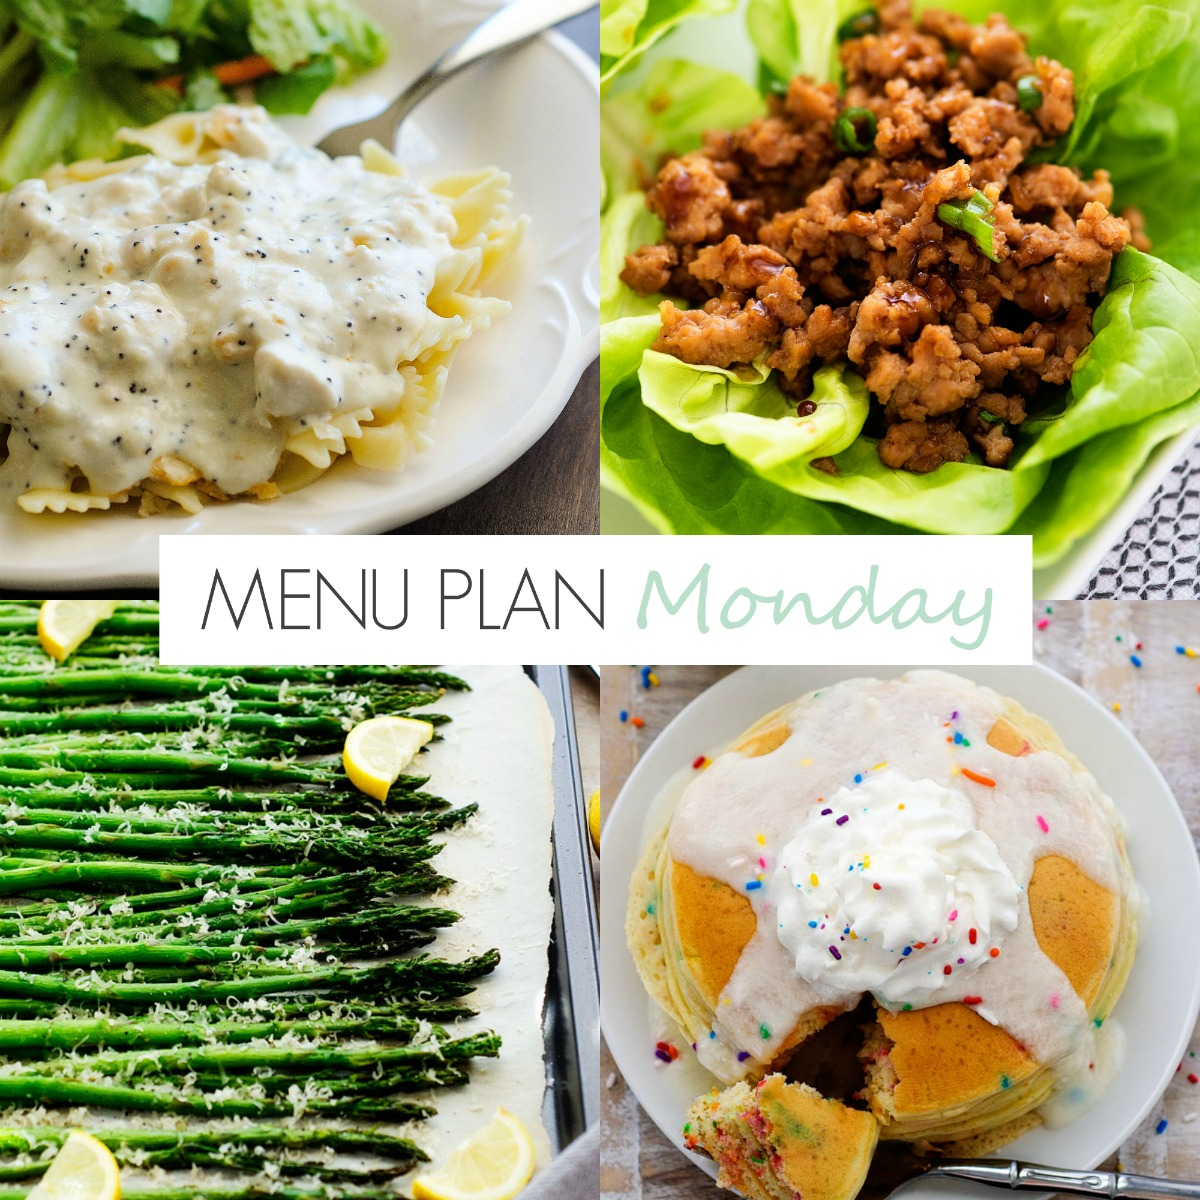 Lots of quick and easy recipes on this week's menu!